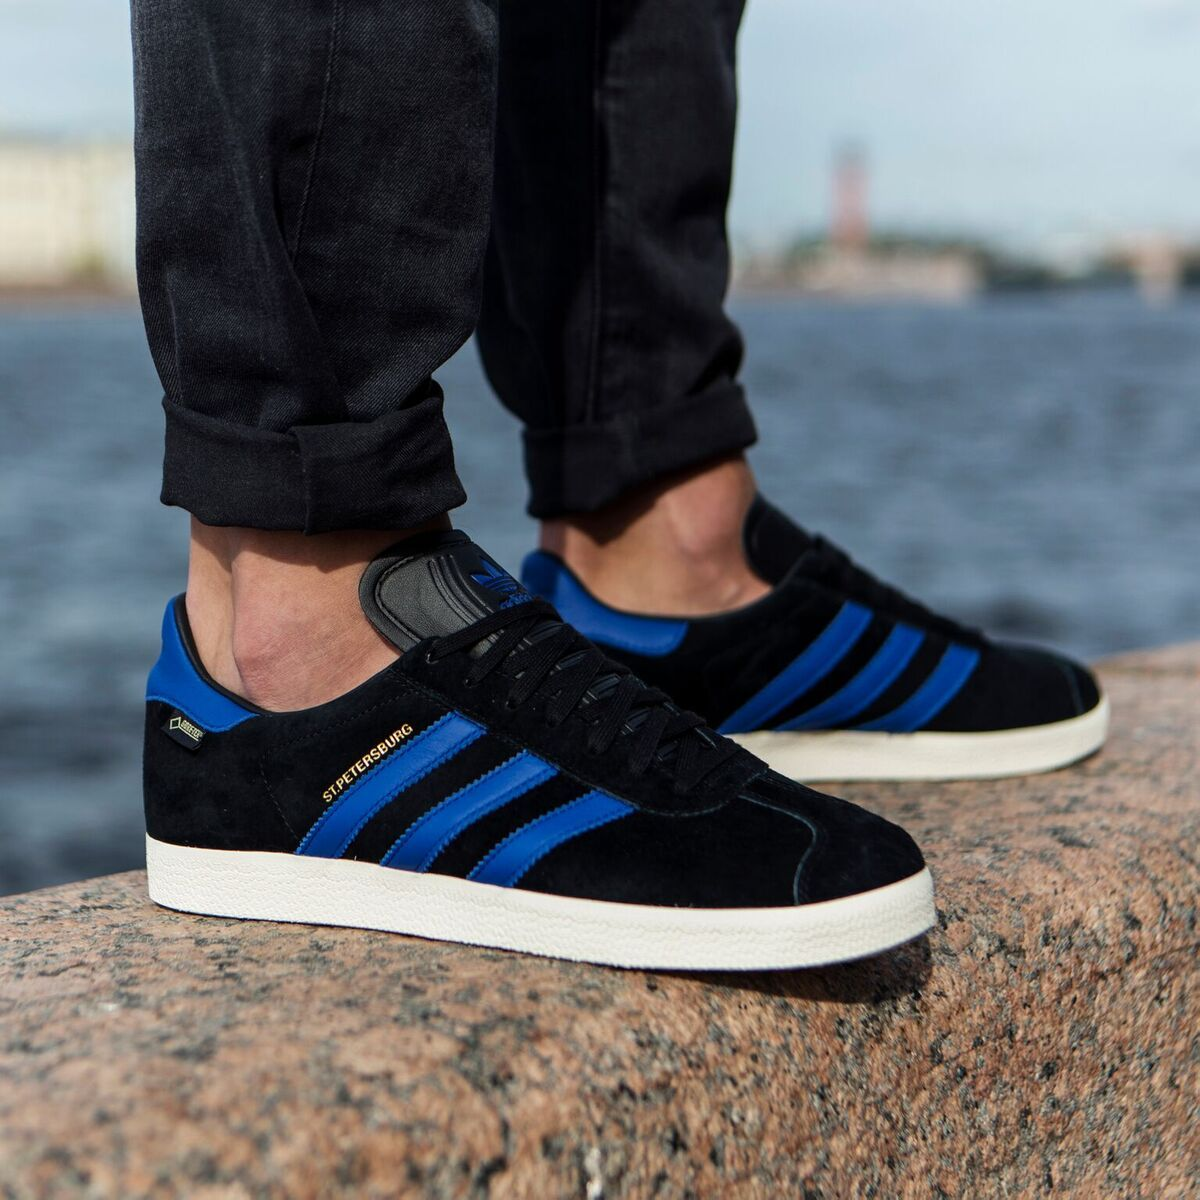 You've gotta love the new adidas Gazelle 'St Petersburg' City Series release